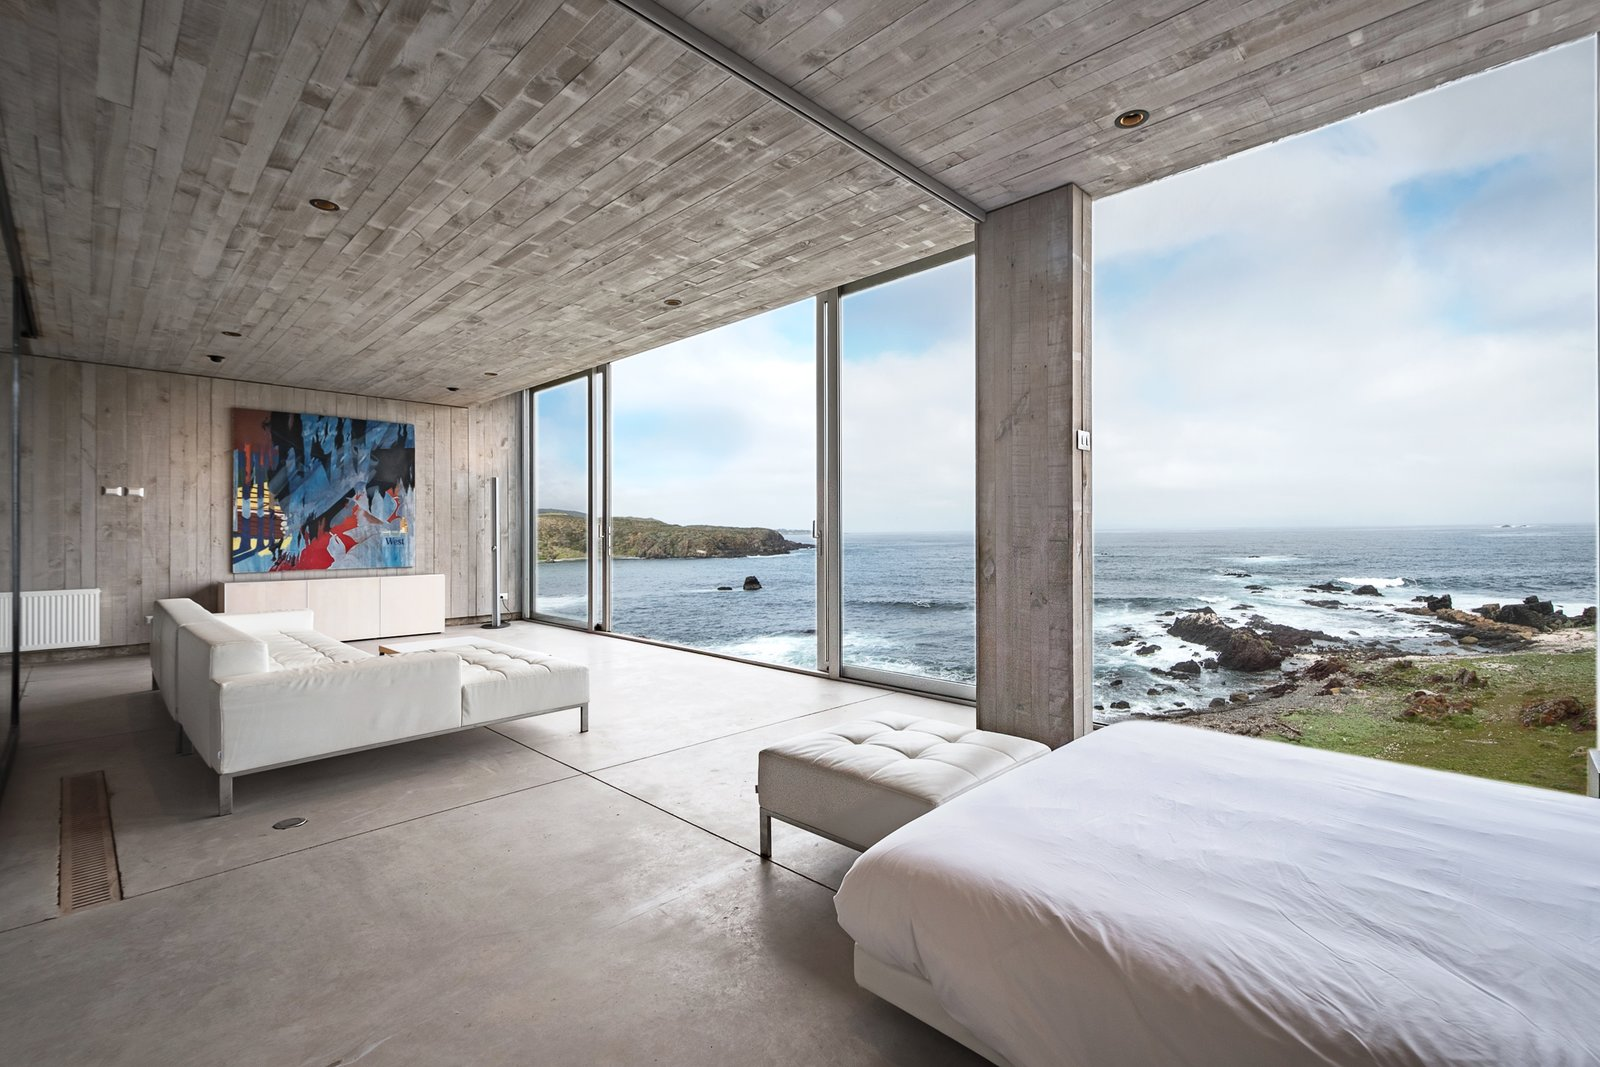 Casa OchoQuebradas bedroom with ocean views